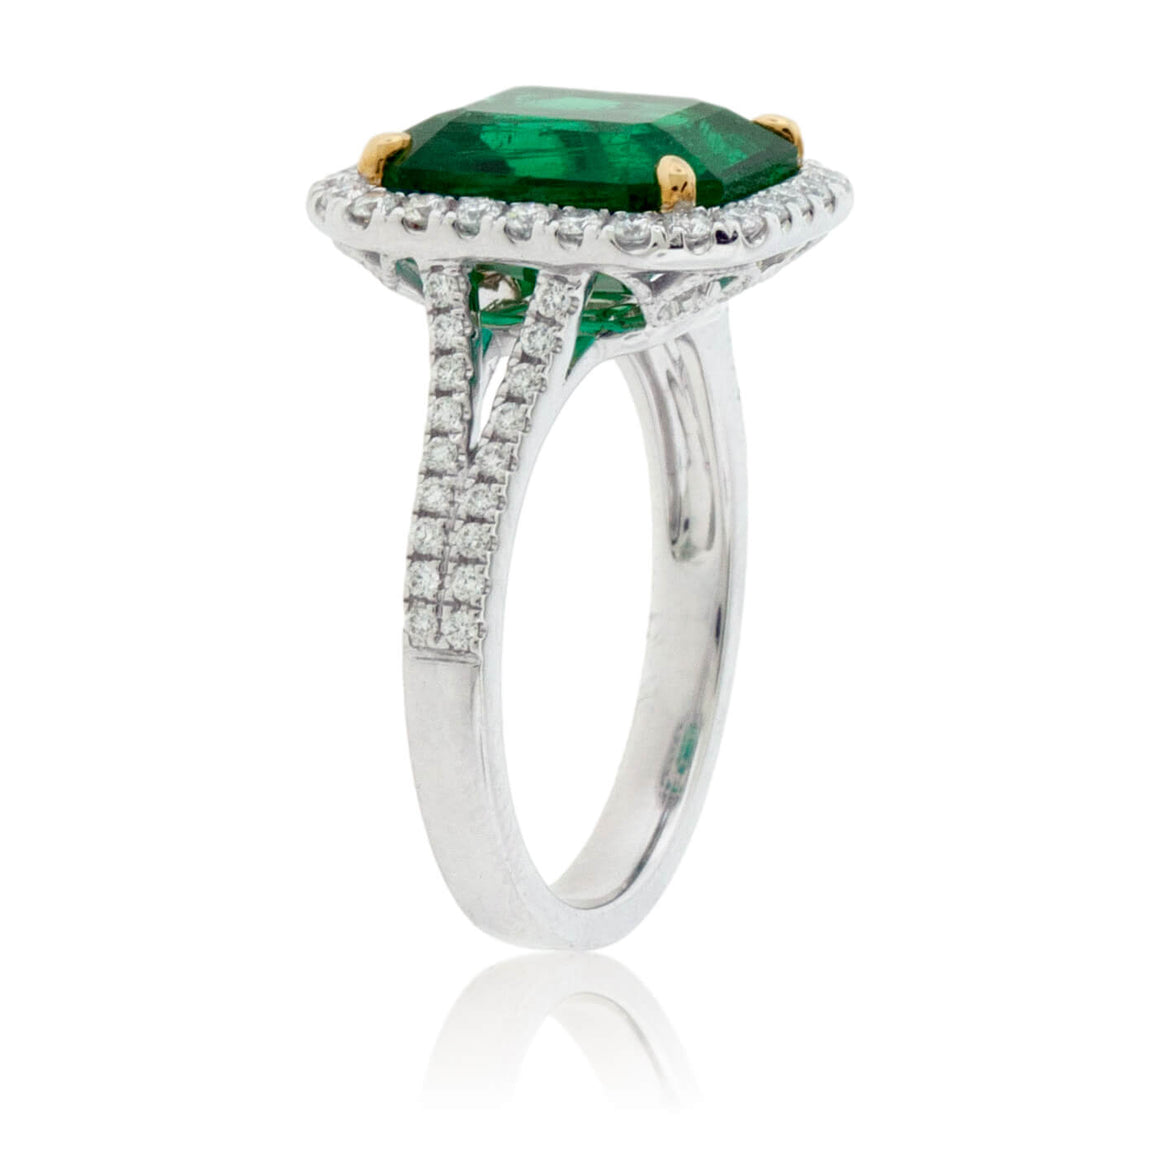 Emerald-Cut Emerald & Diamond Halo Ring